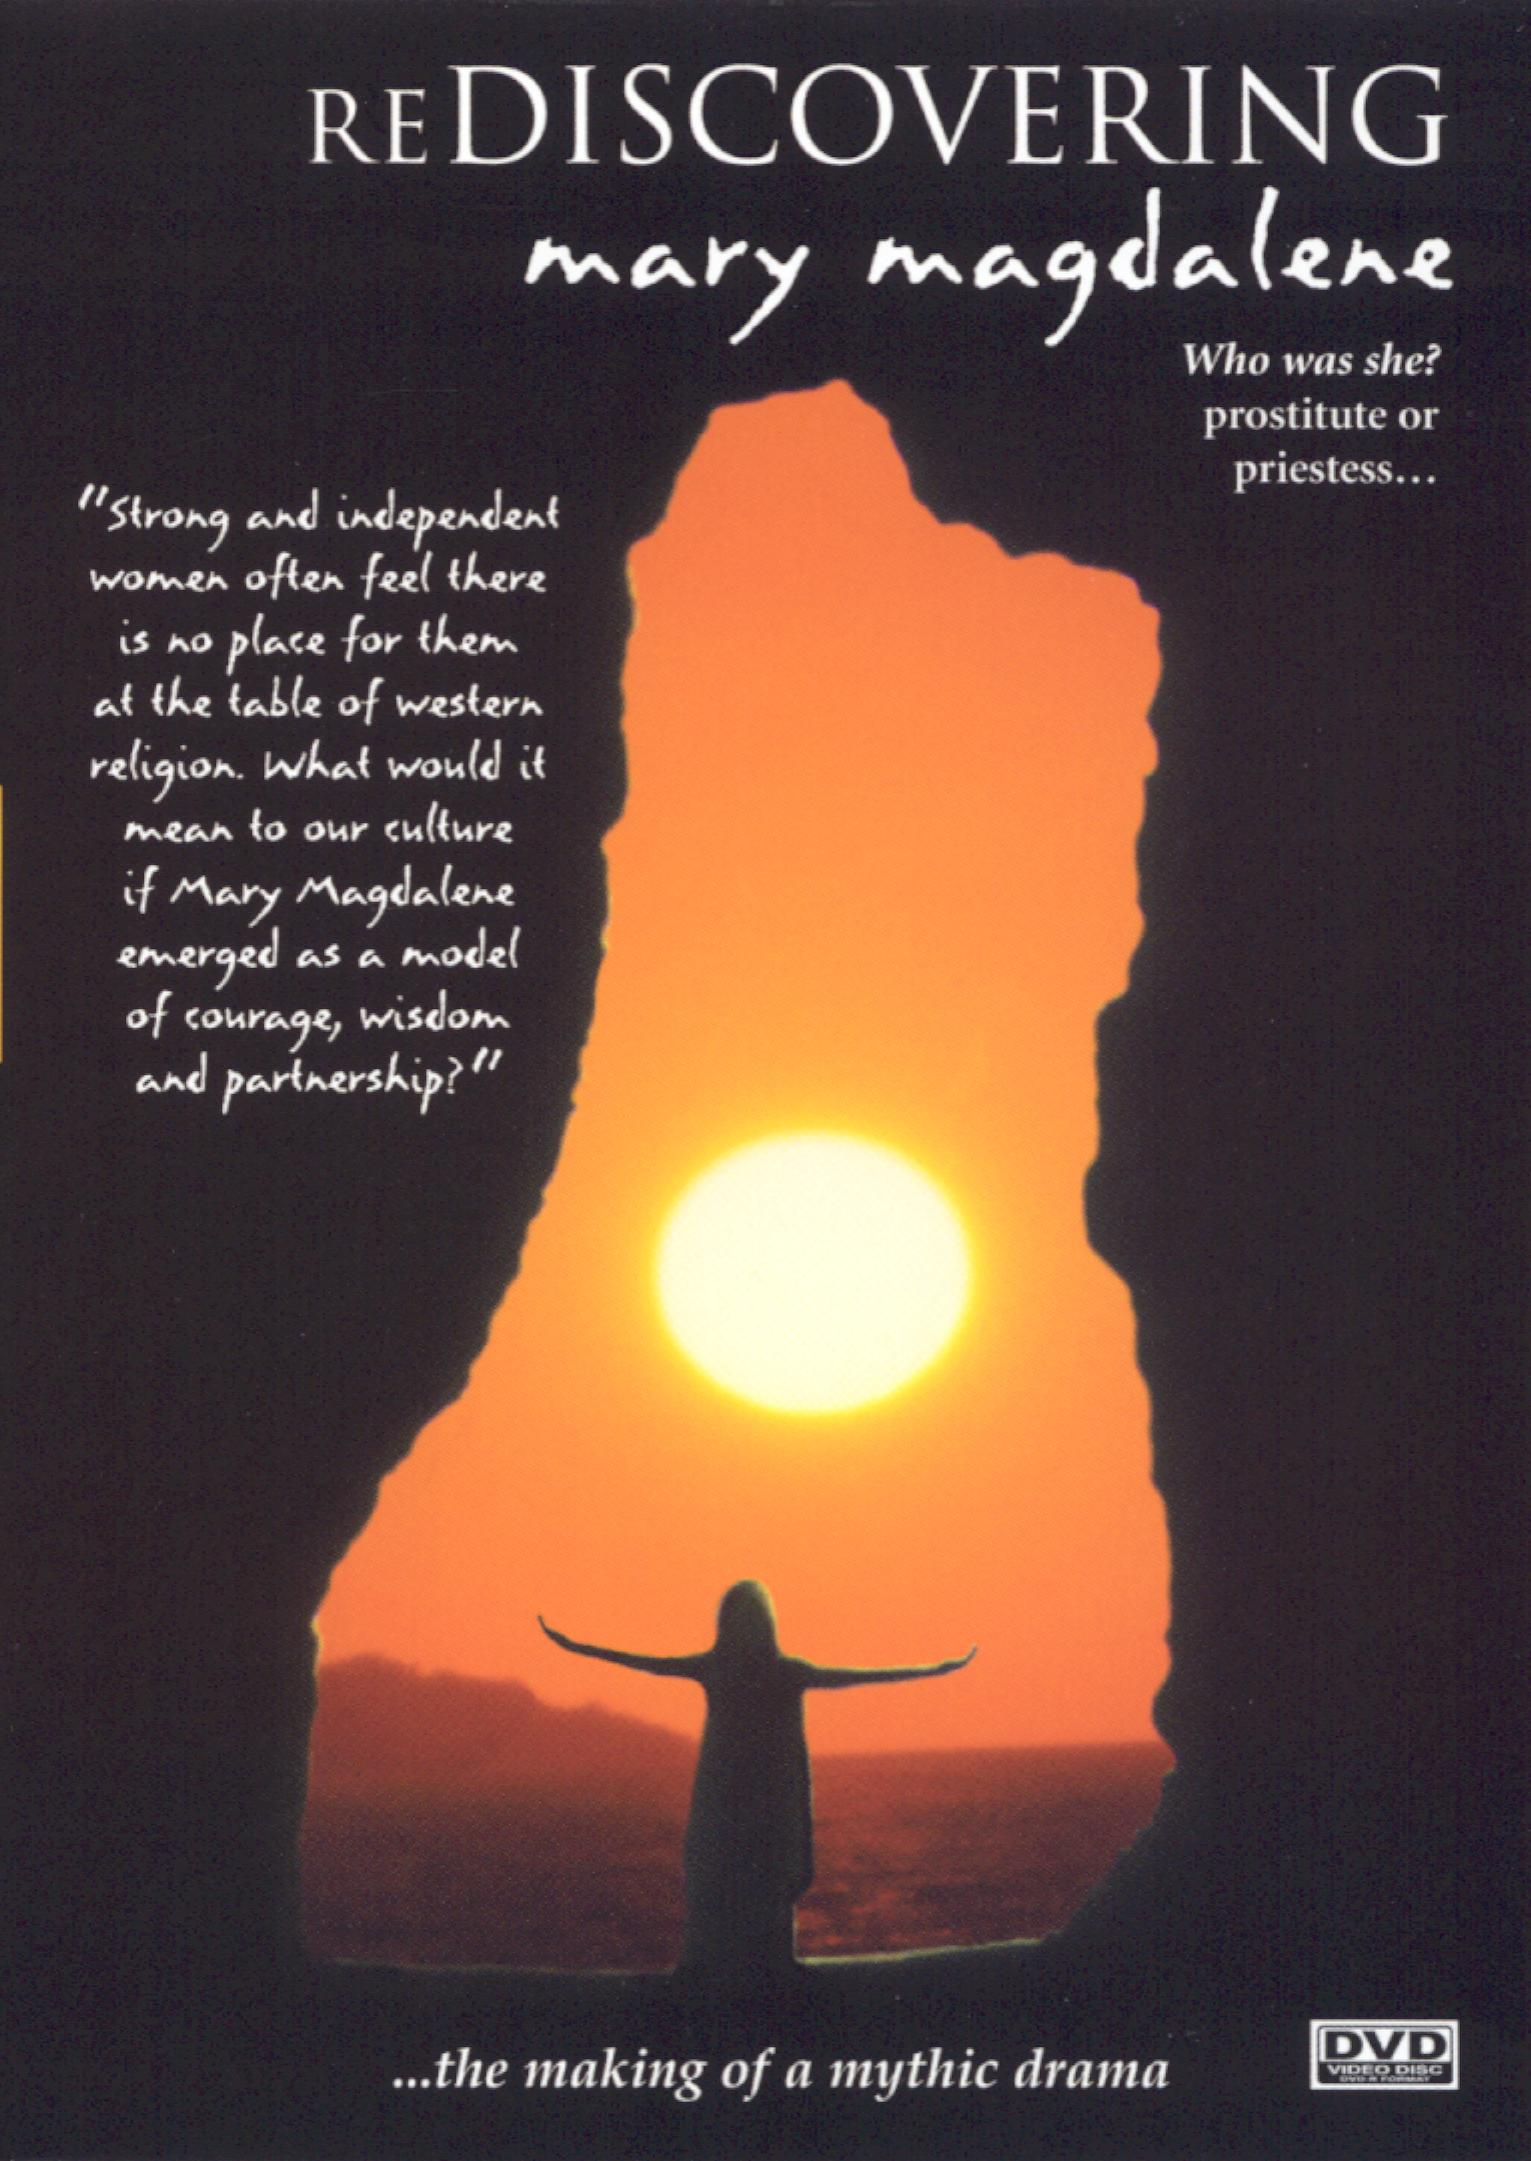 Rediscovering Mary Magdalene